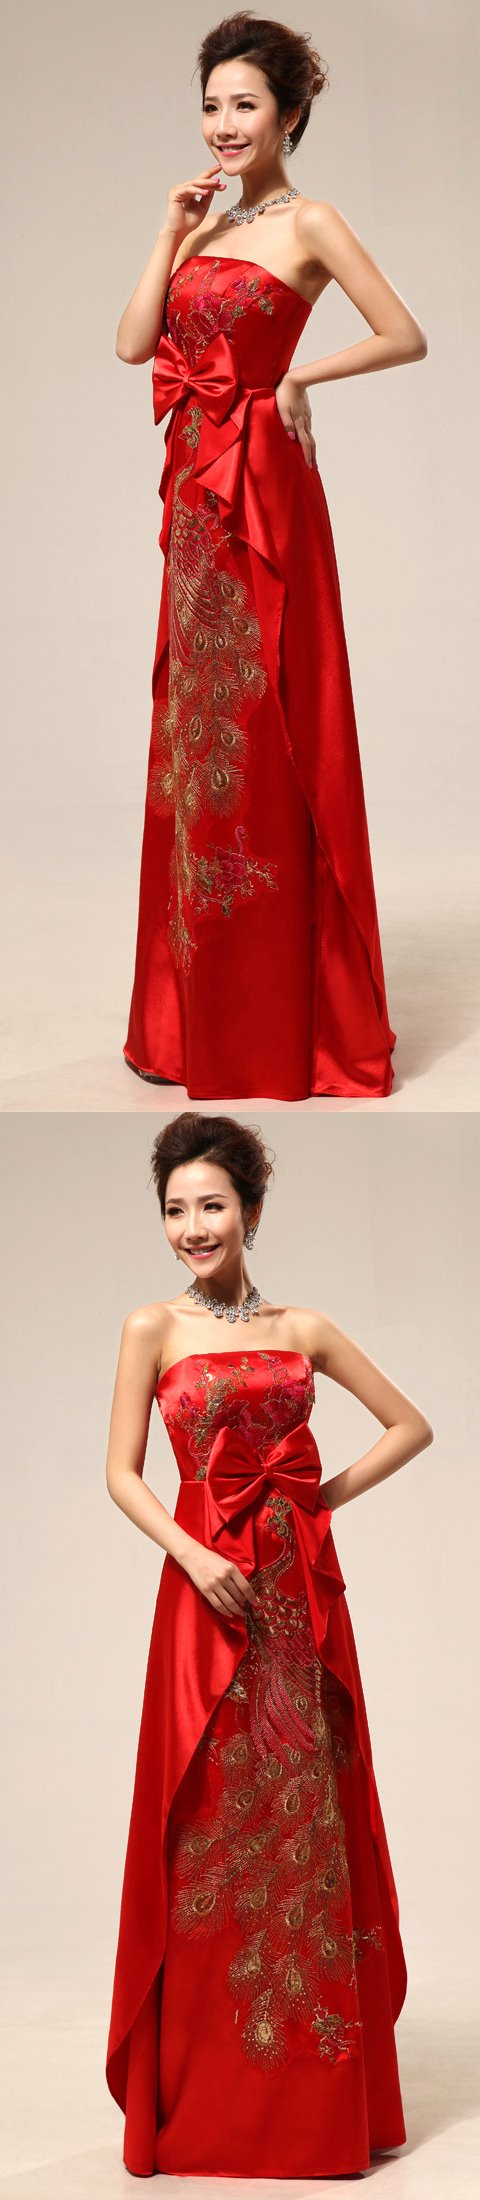 Bare-shoulders Long Prom Dress (RM)